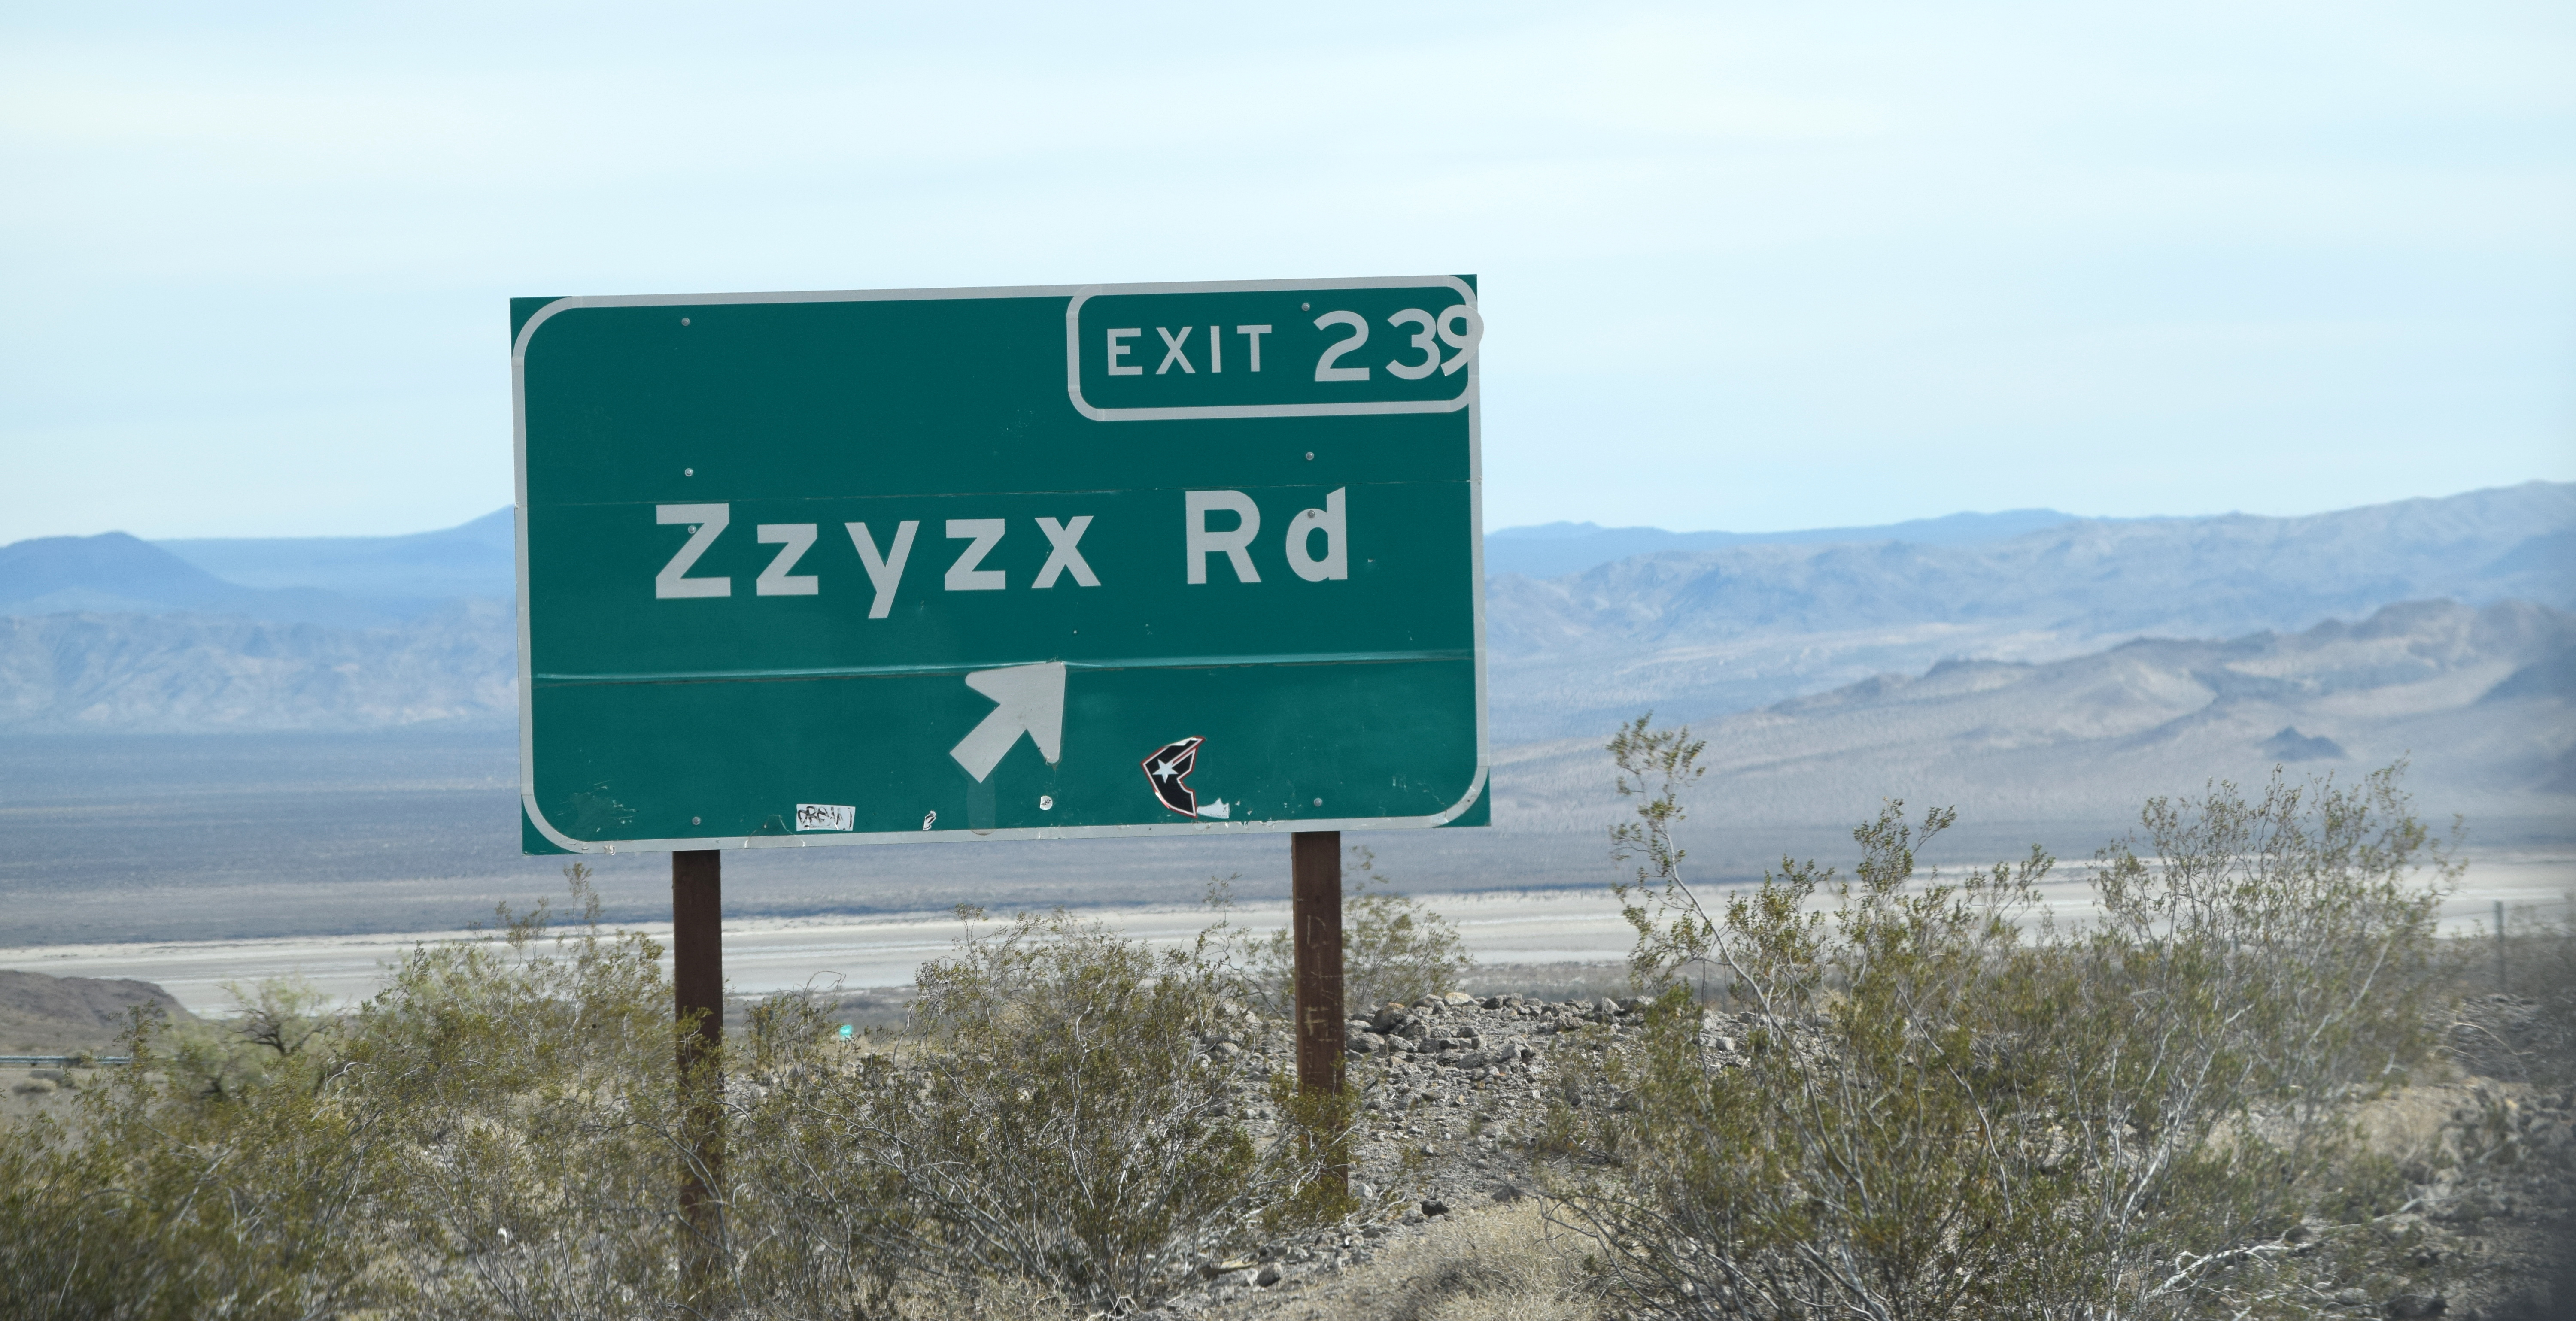 Jordan Novack Zzyzx Road, the most famously obscure street in the country